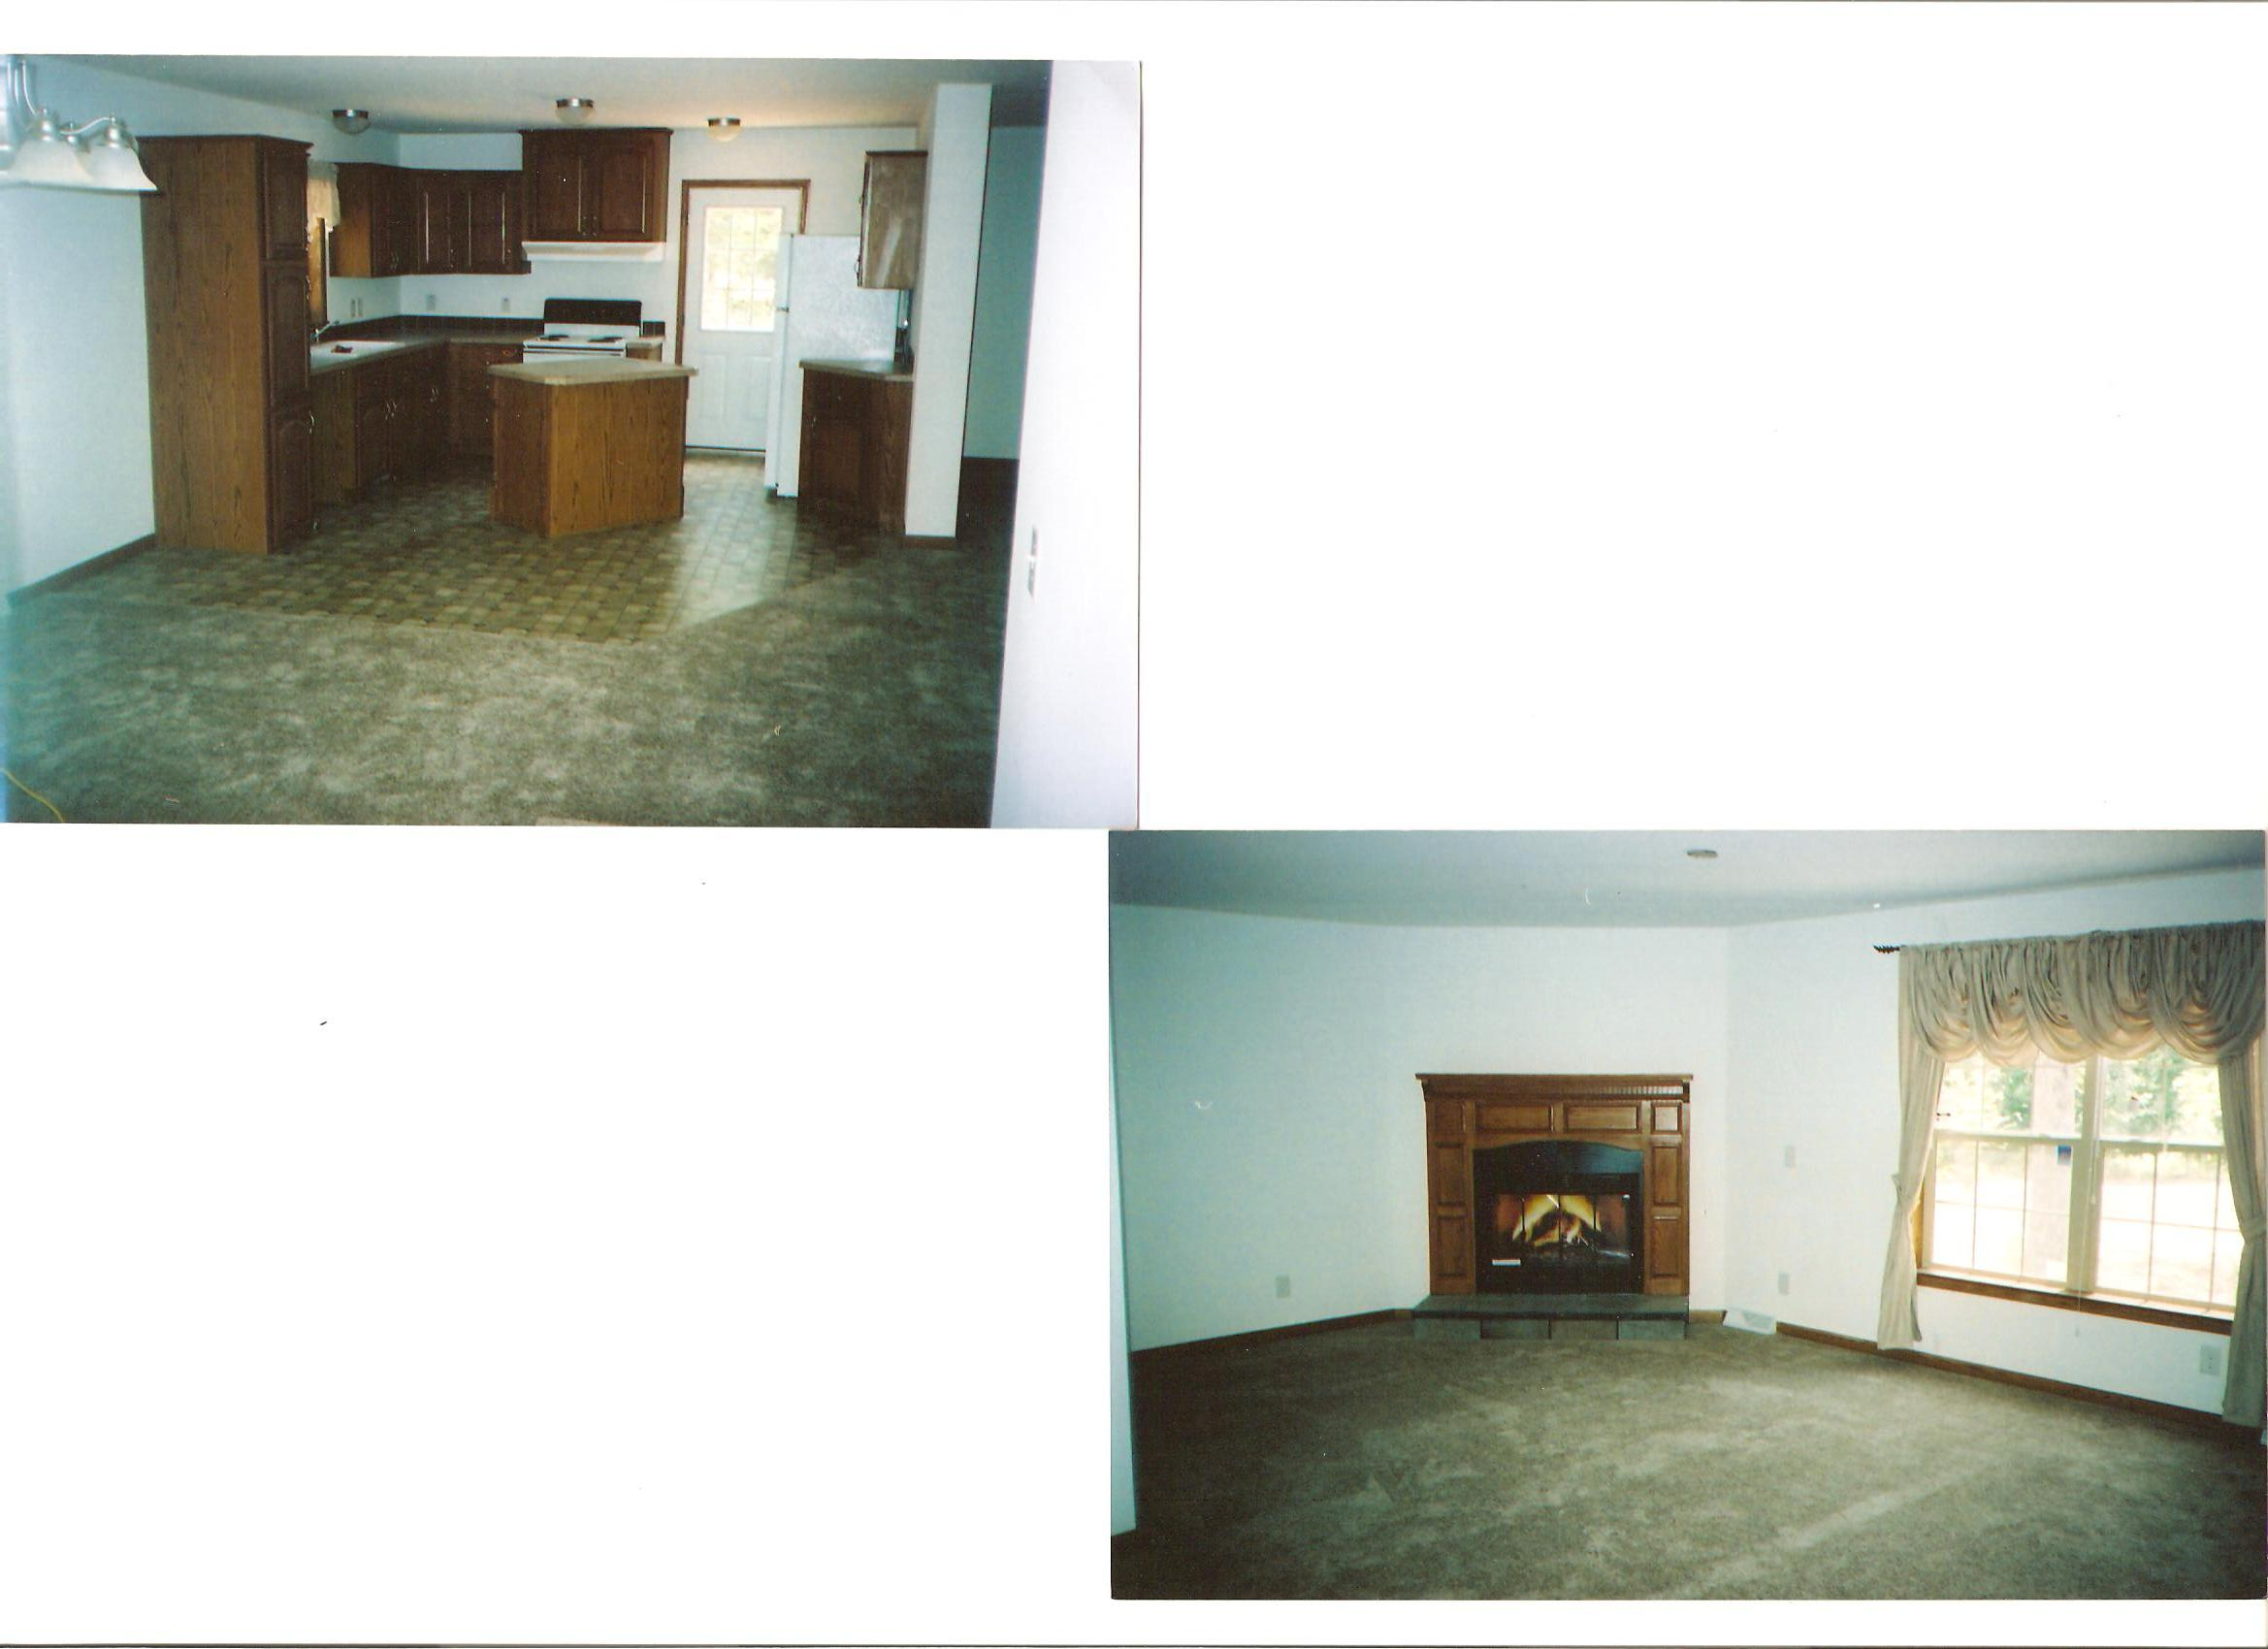 picture of fireplace and kitchen